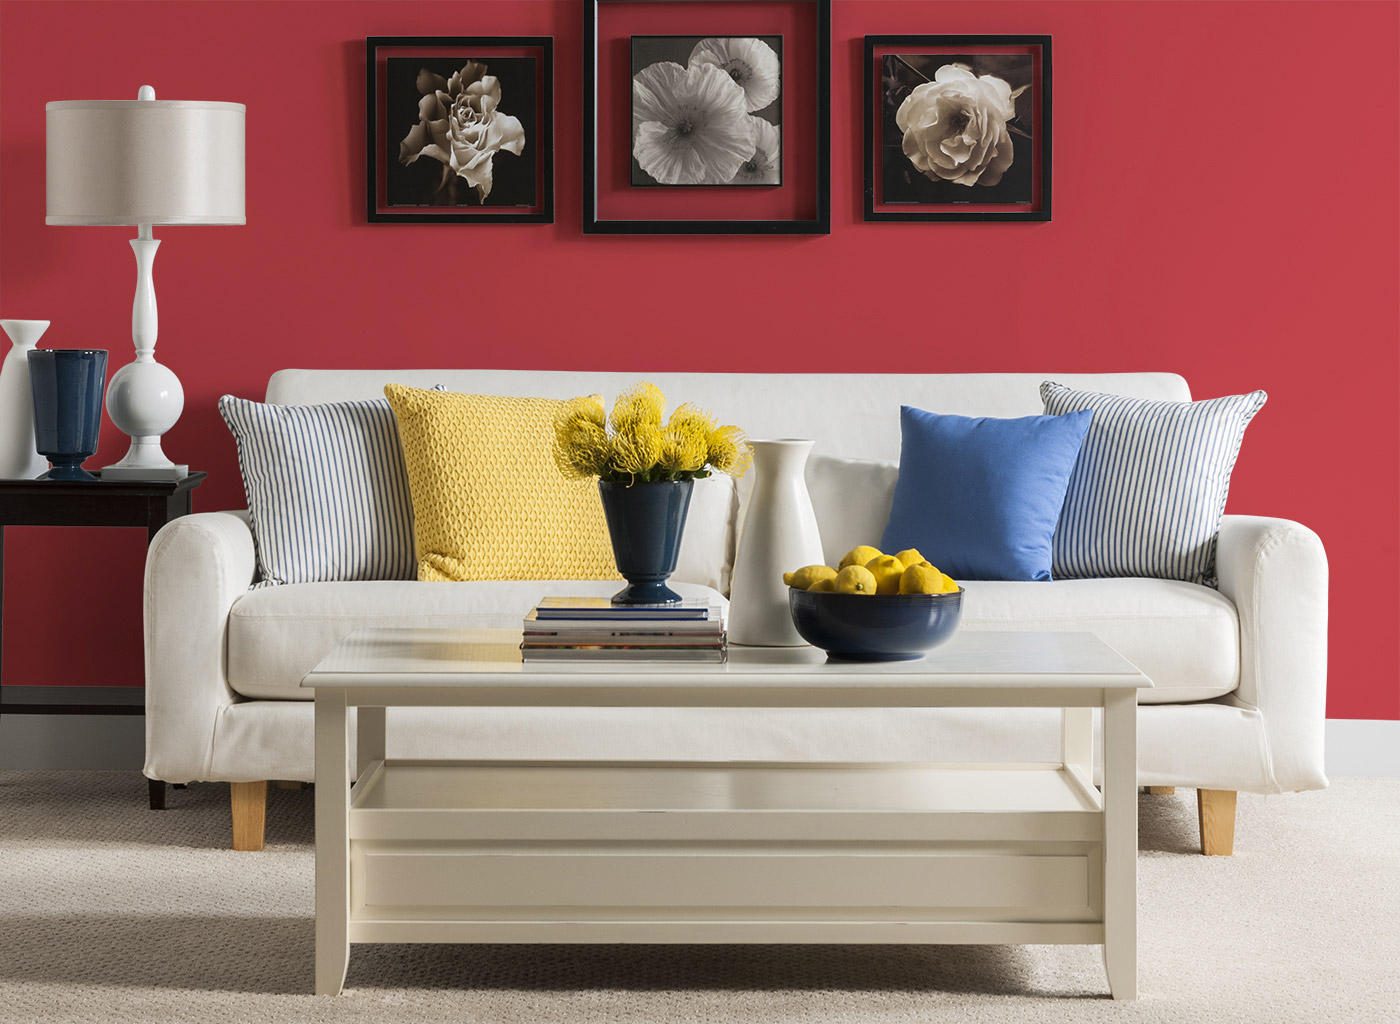 Living room color red.  Source: cil.ca.